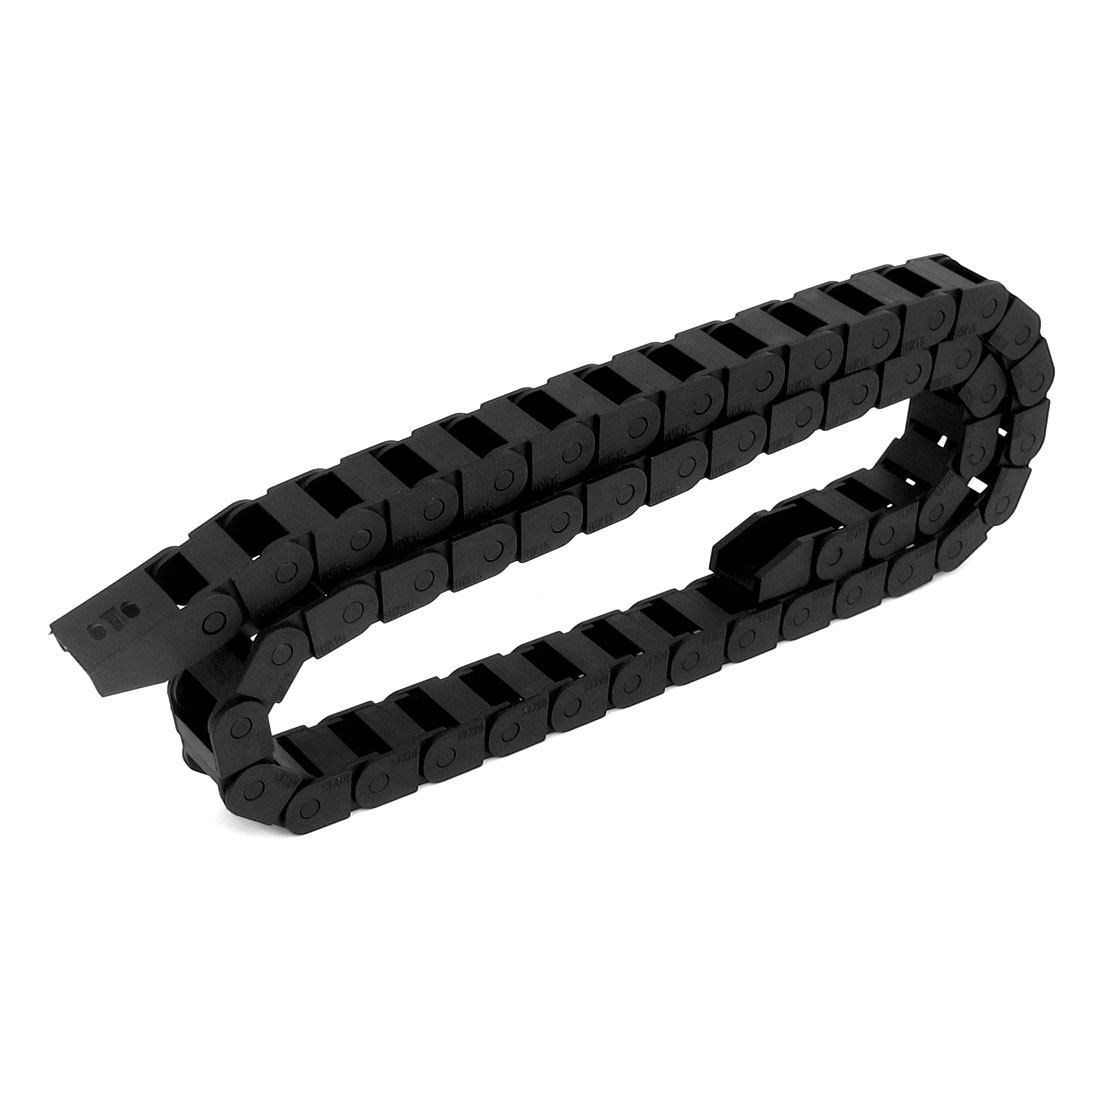 10mm x 15mm 100cm Length Black Plastic Towline Cable Drag Chain Nested Wire Carrier for CNC Router Mill